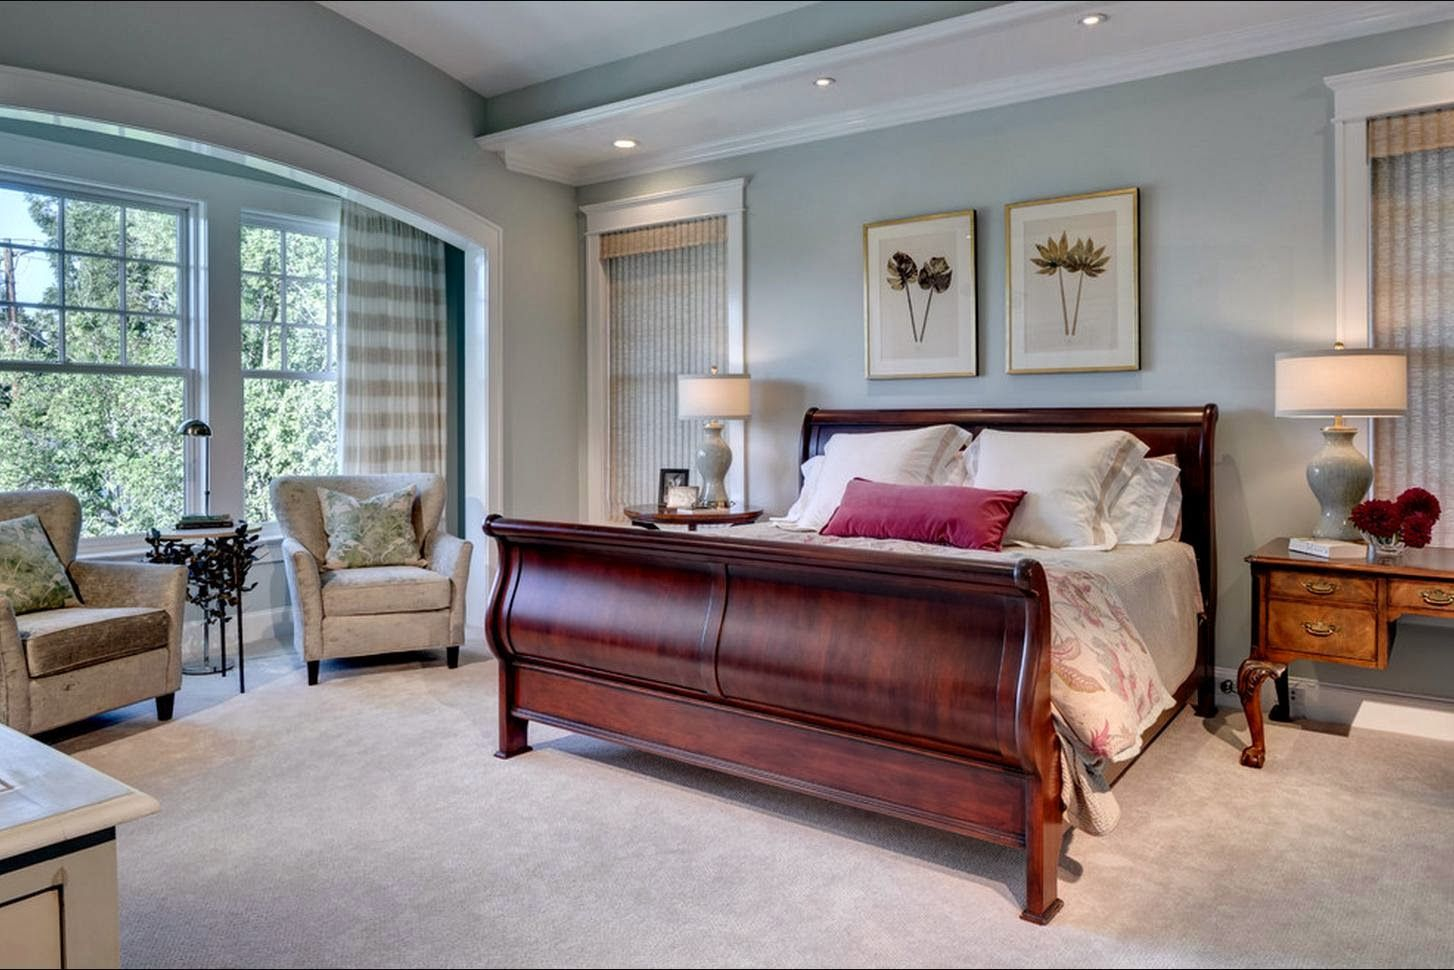 Light Blue And Grey Bedroom Ideas Color To Paint A Room With throughout proportions 1454 X 970